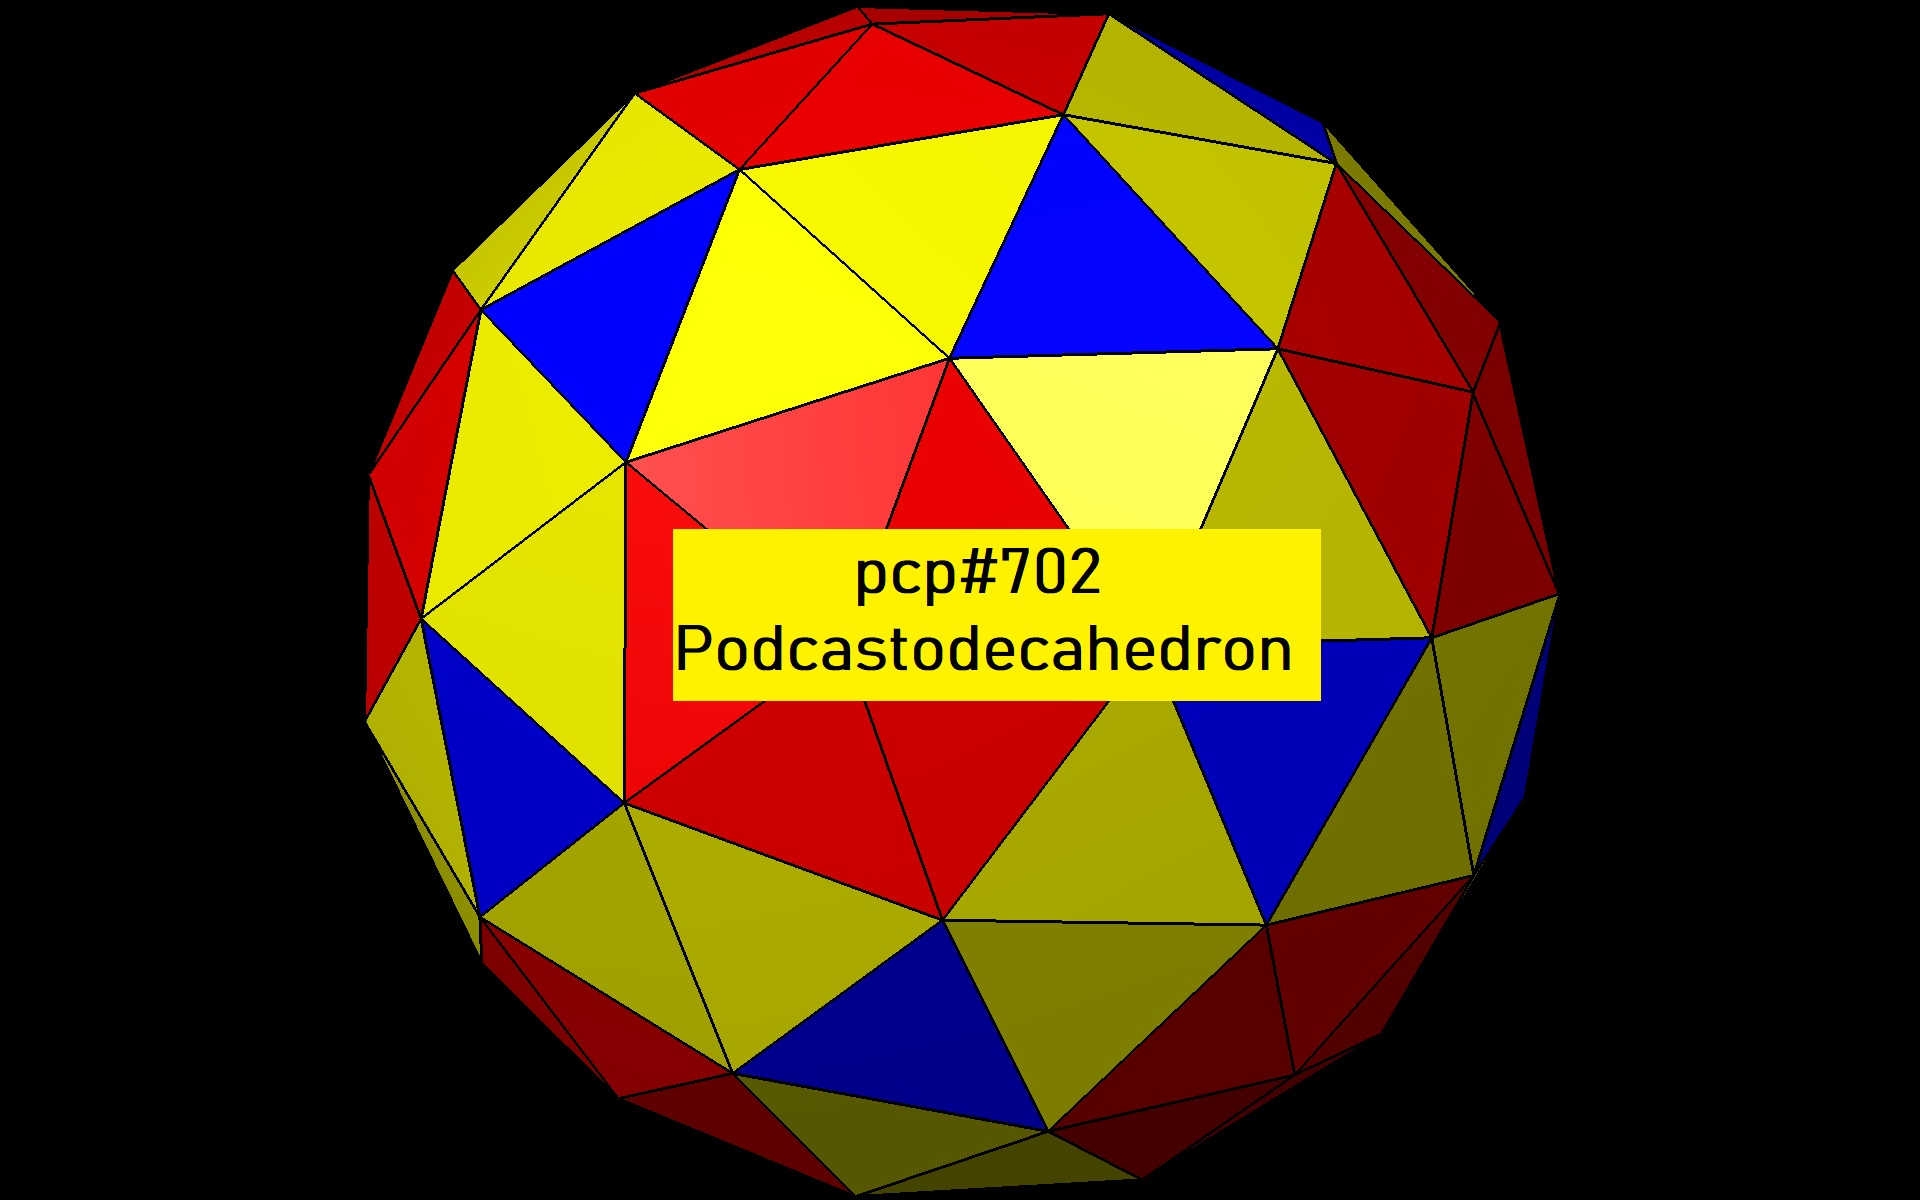 PCP#702... Podcastodecahedron.....